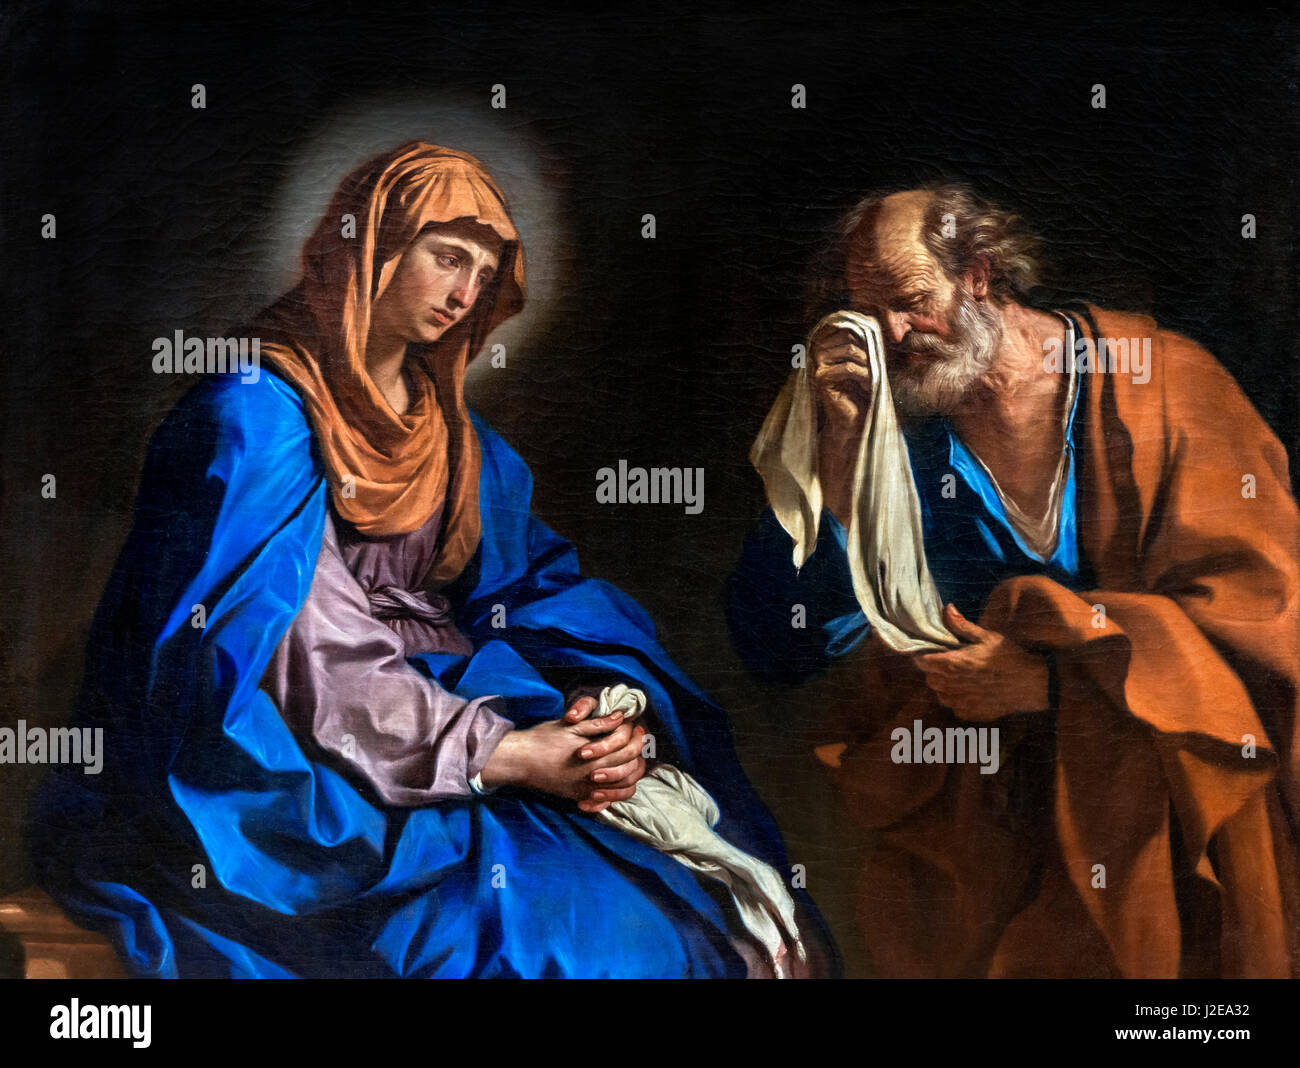 The Tears of St Peter by Guercino (Giovanni Francesco Barbieri: 1591-1666), 1647 - Stock Image